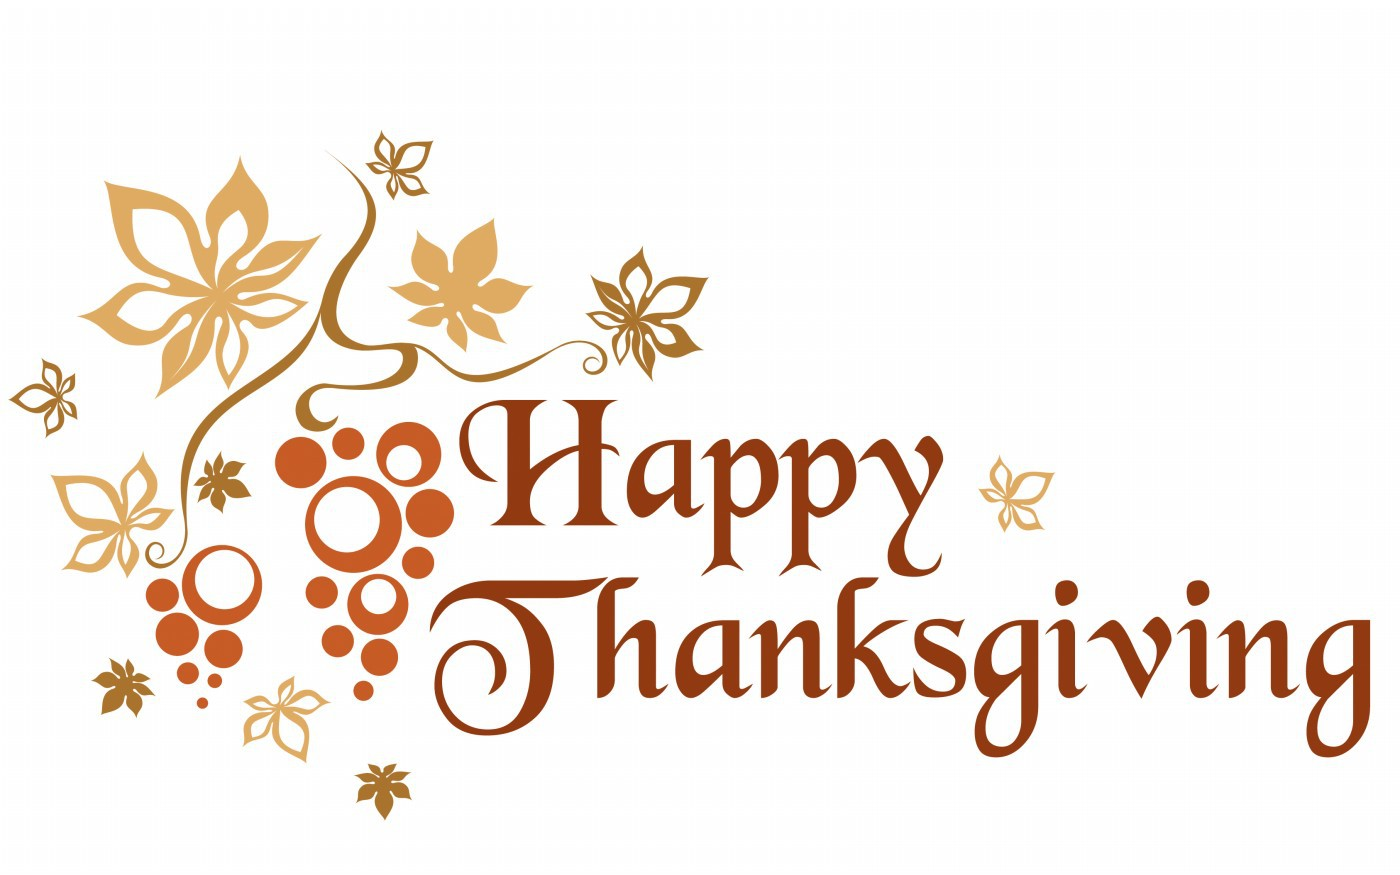 Happy Thanksgiving 2014 Pictures Images Clipart Photos